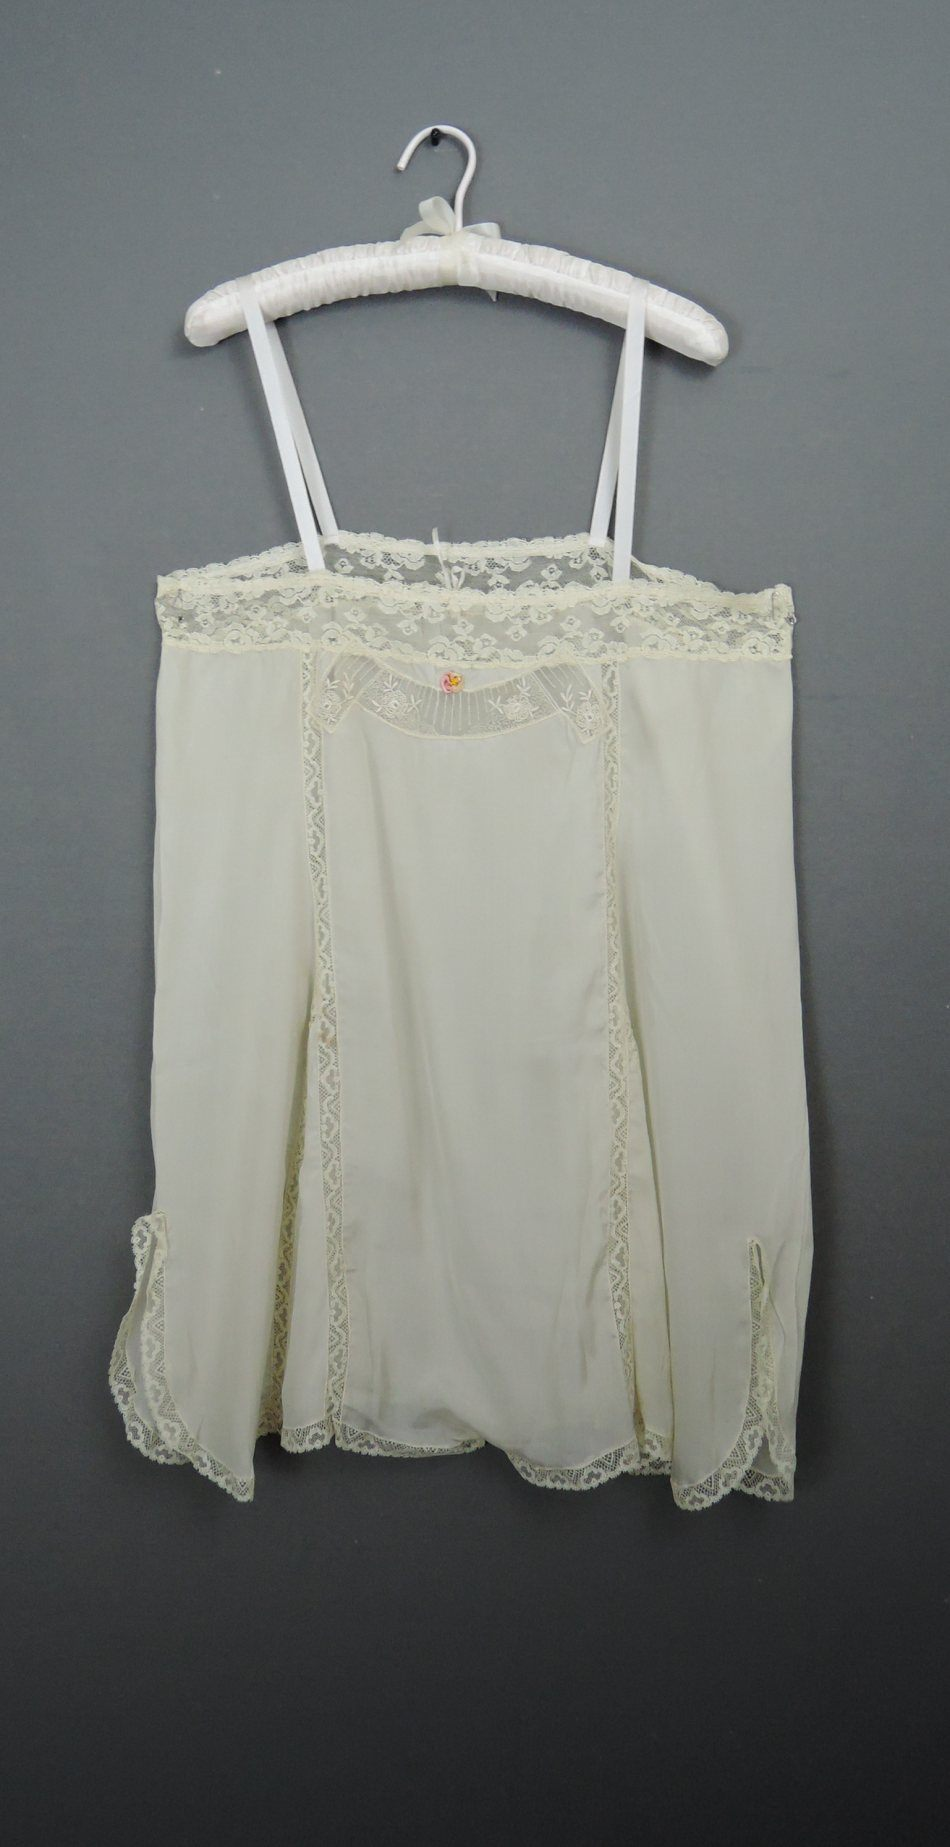 Vintage 1920s Ivory Silk Teddy, fits 36 inch bust, Lace & Rosettes, Step in Chemise